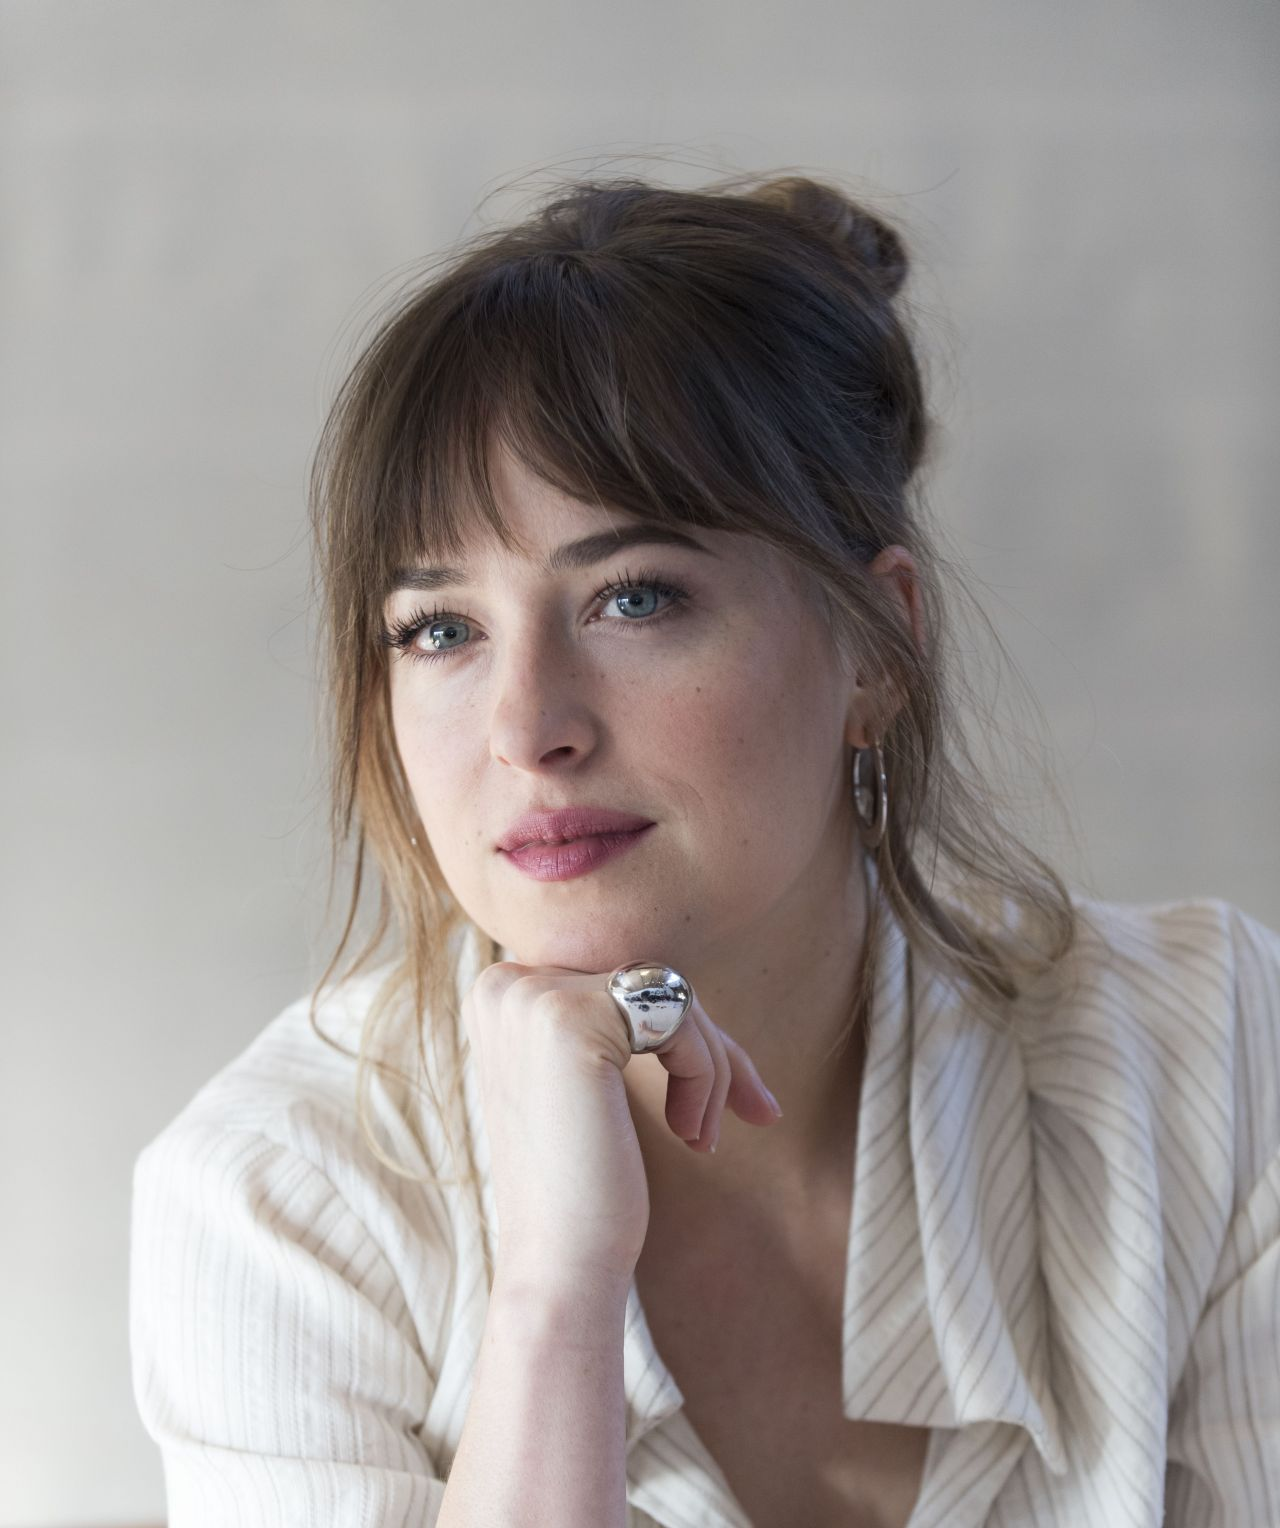 http://celebmafia.com/wp-content/uploads/2018/01/dakota-johnson-fifty-shades-freed-press-conference-in-los-angeles-8.jpg